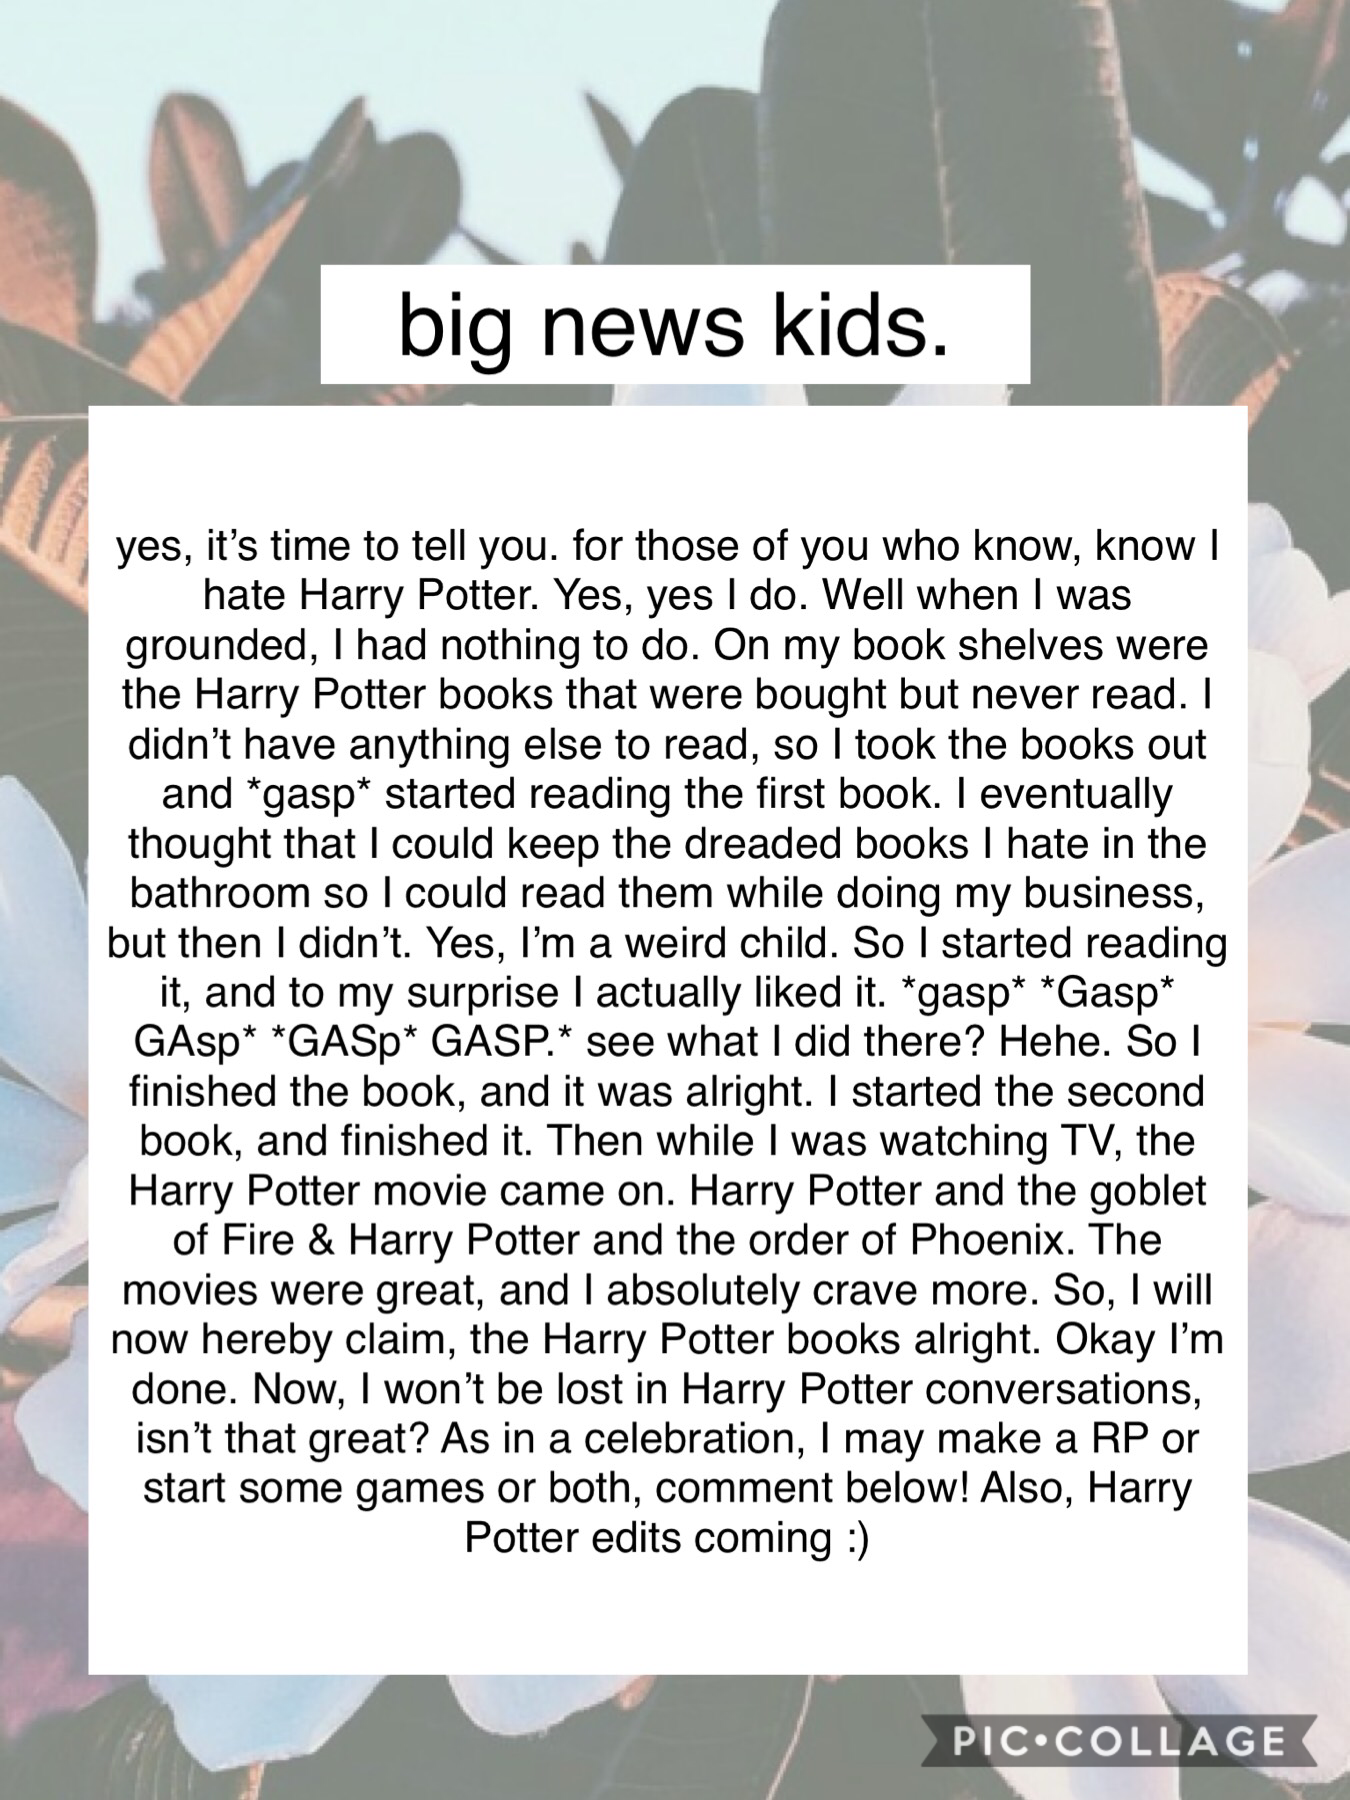 💥BIG NEWS💥 Anywho, I'm a griffindor💥 EEE, I need to get the other books soon💥 Probably gonna delete this💥 Games or RP, or both?💥I'm still a Percy Jackson fan for life, no doubt.💥 #PCONLY #BIGNEWS? #GRIFFINDOR #PJFAN4LIFE #OKIE #BAI #HEHE #NEVER #OKIE #NOW